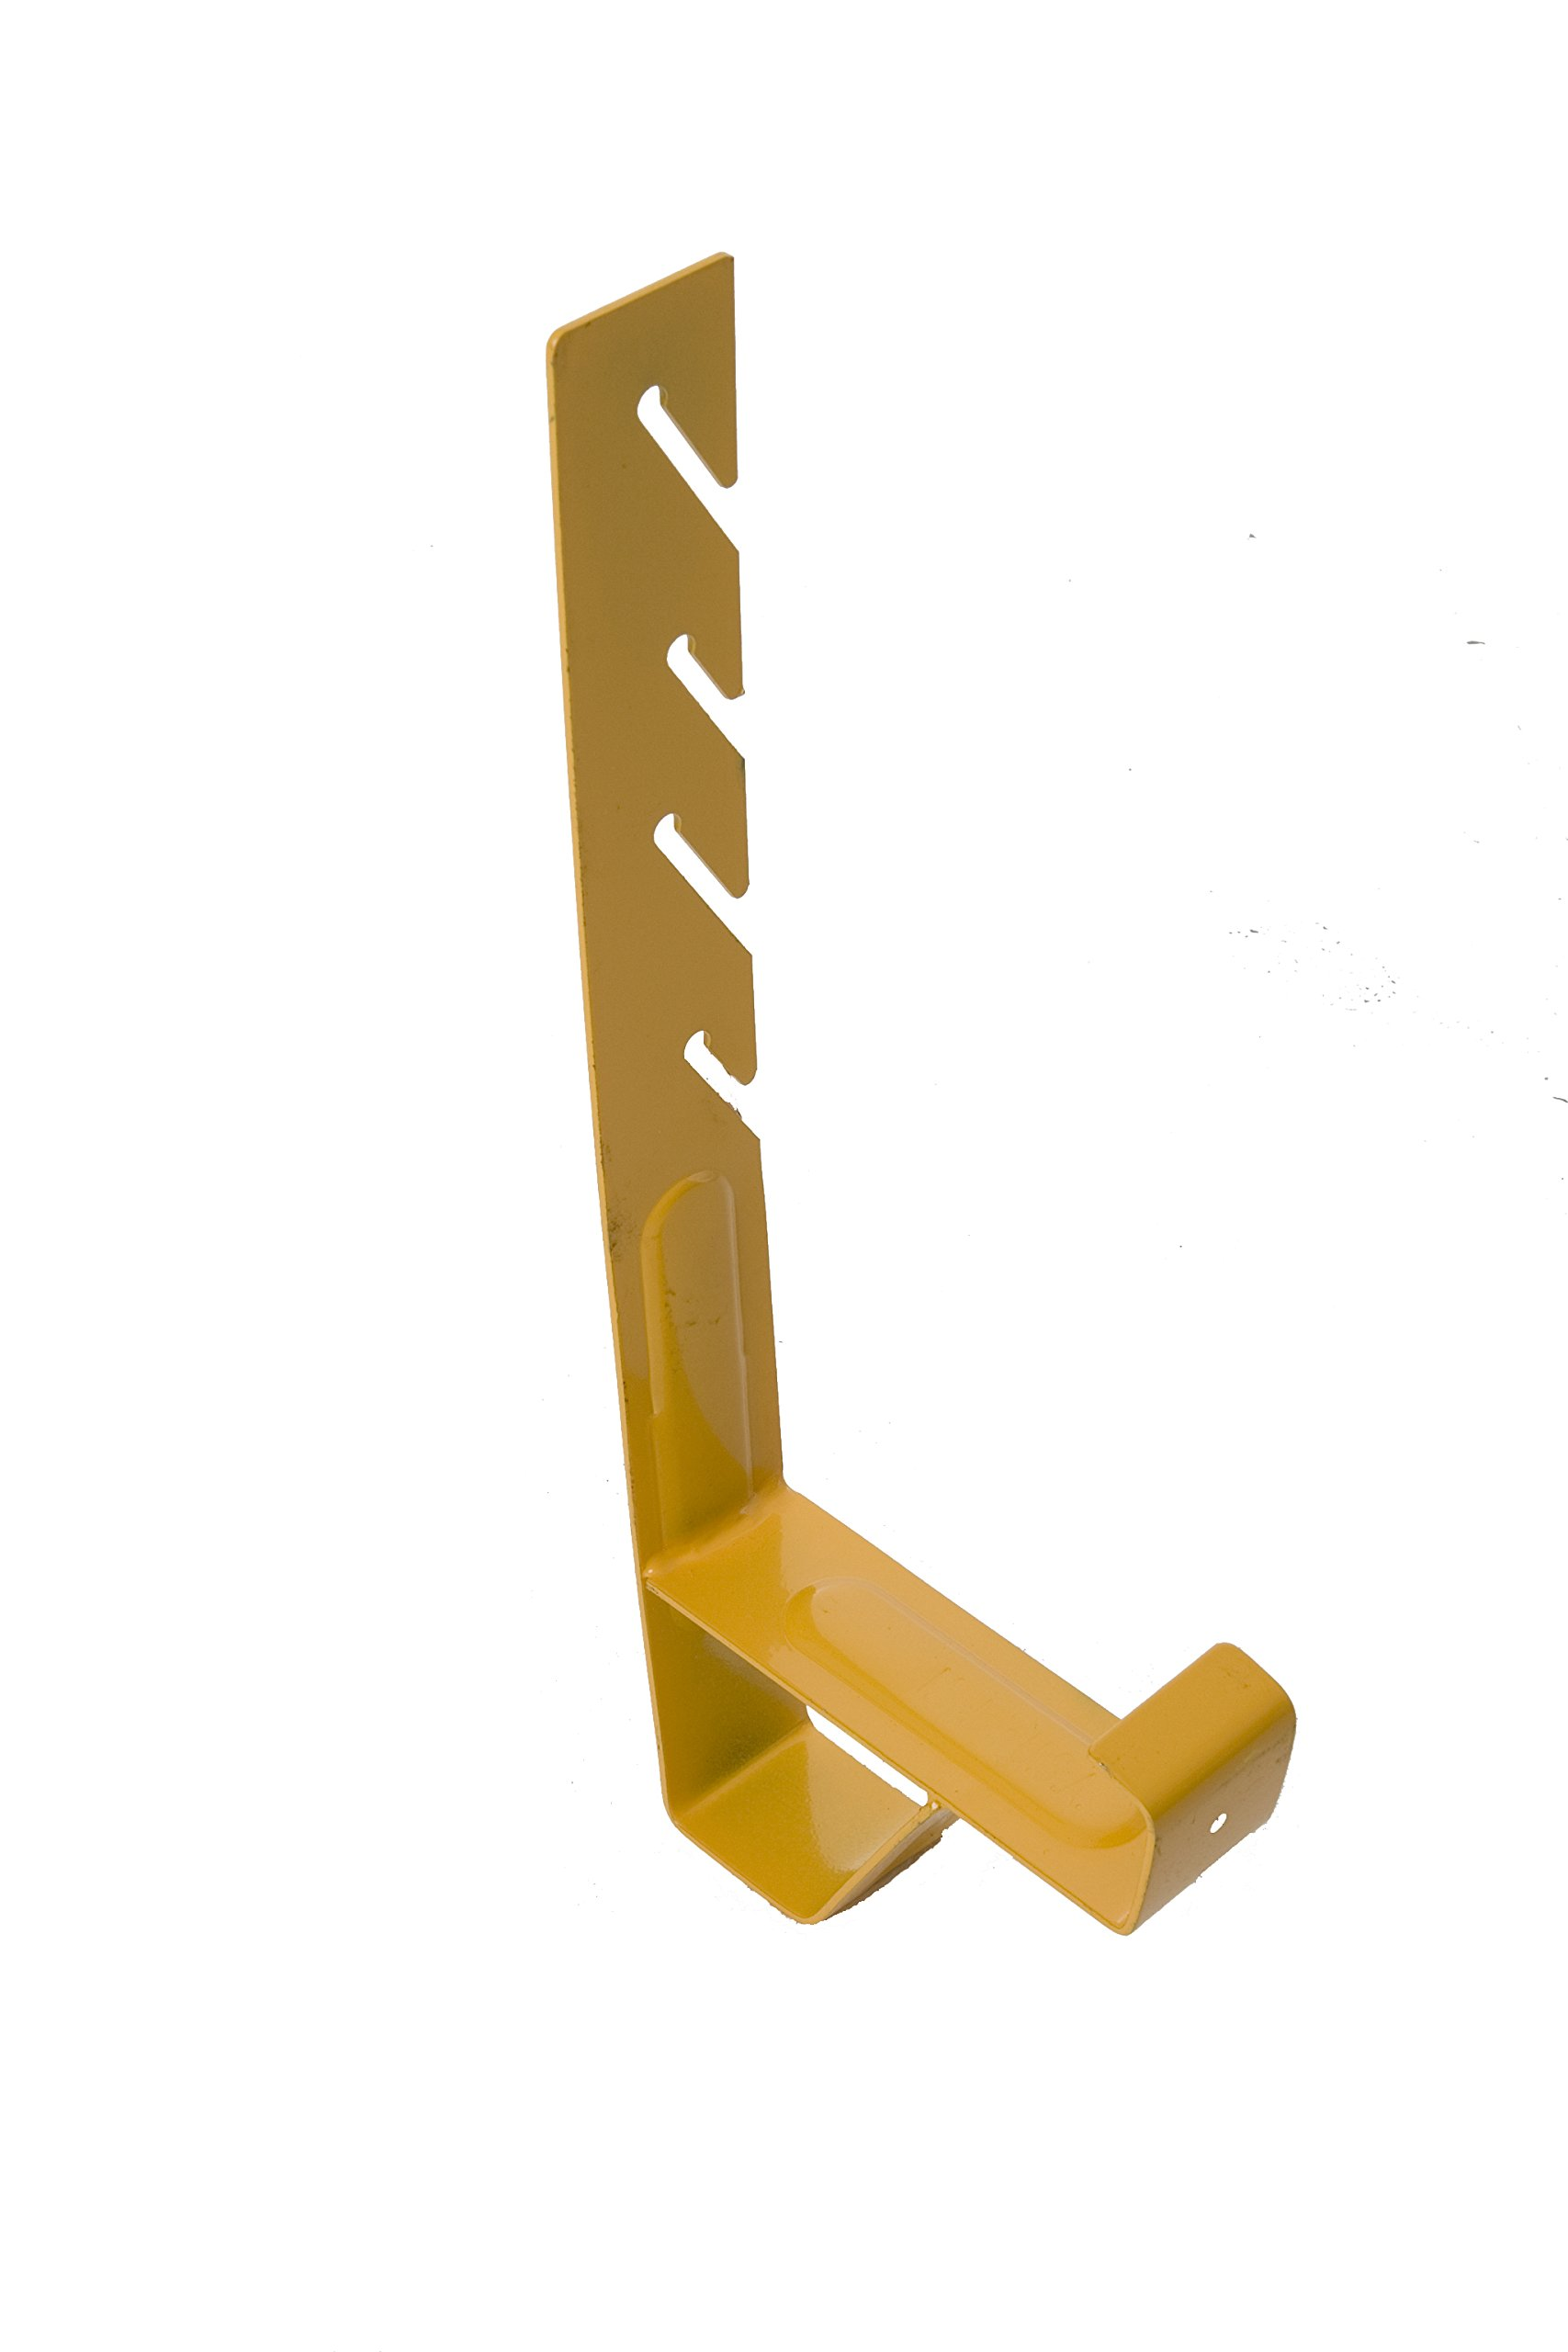 ACRO BUILDING SYSTEMS Fixed Roof Bracket 90 Degree, 2x6 Plank. Box of 12 by ACRO BUILDING SYSTEMS (Image #3)